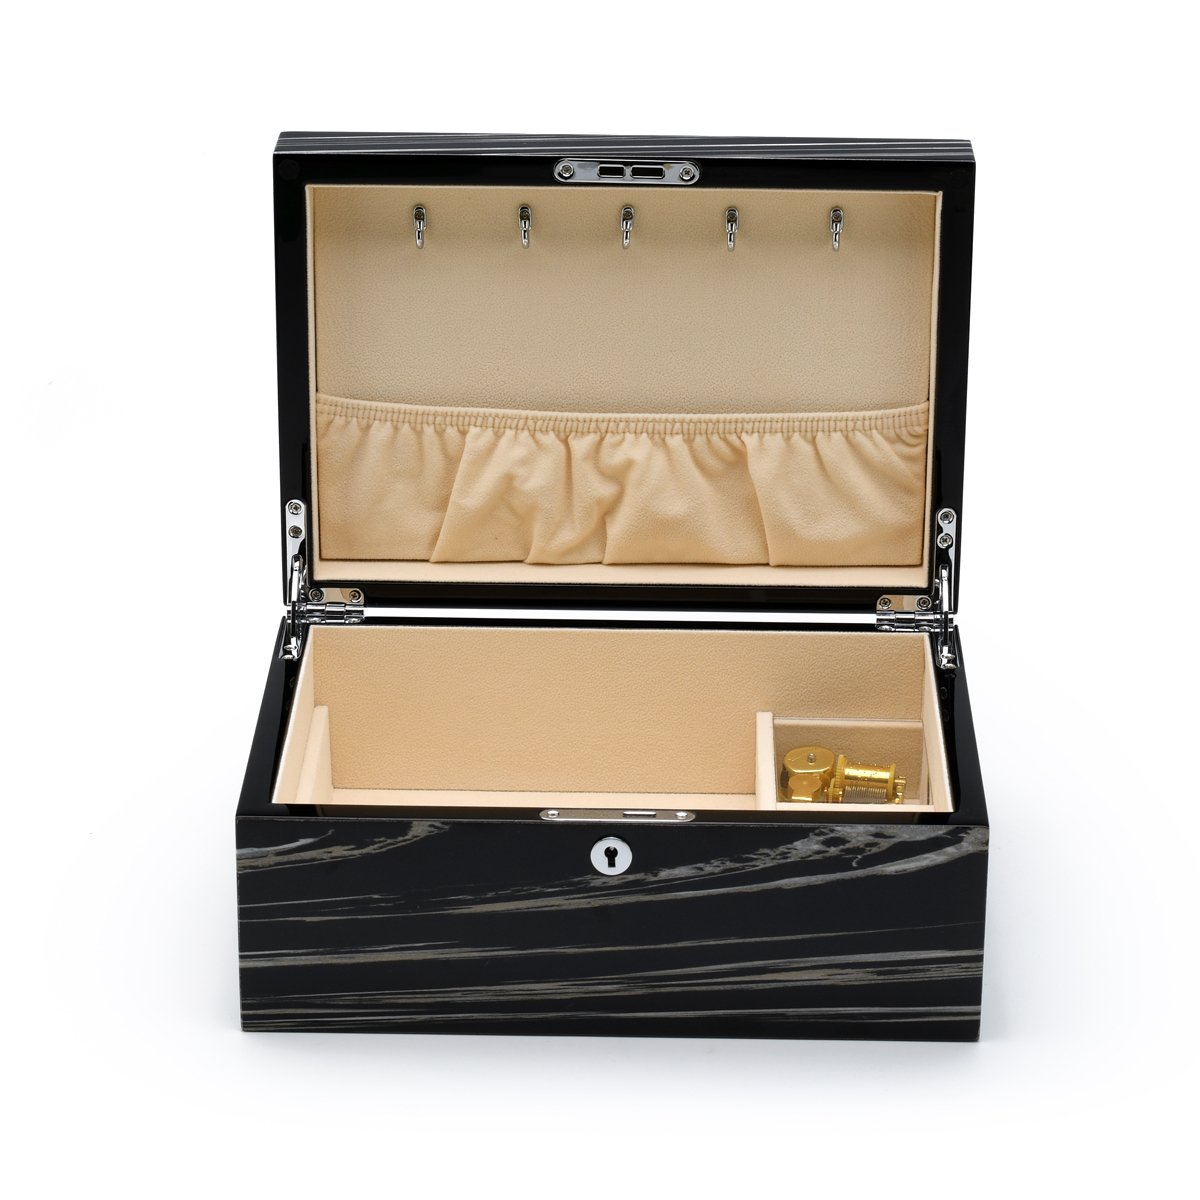 Modern 30 Note Hi-gloss Granite Finish Elements Collection Musical Jewelry Box